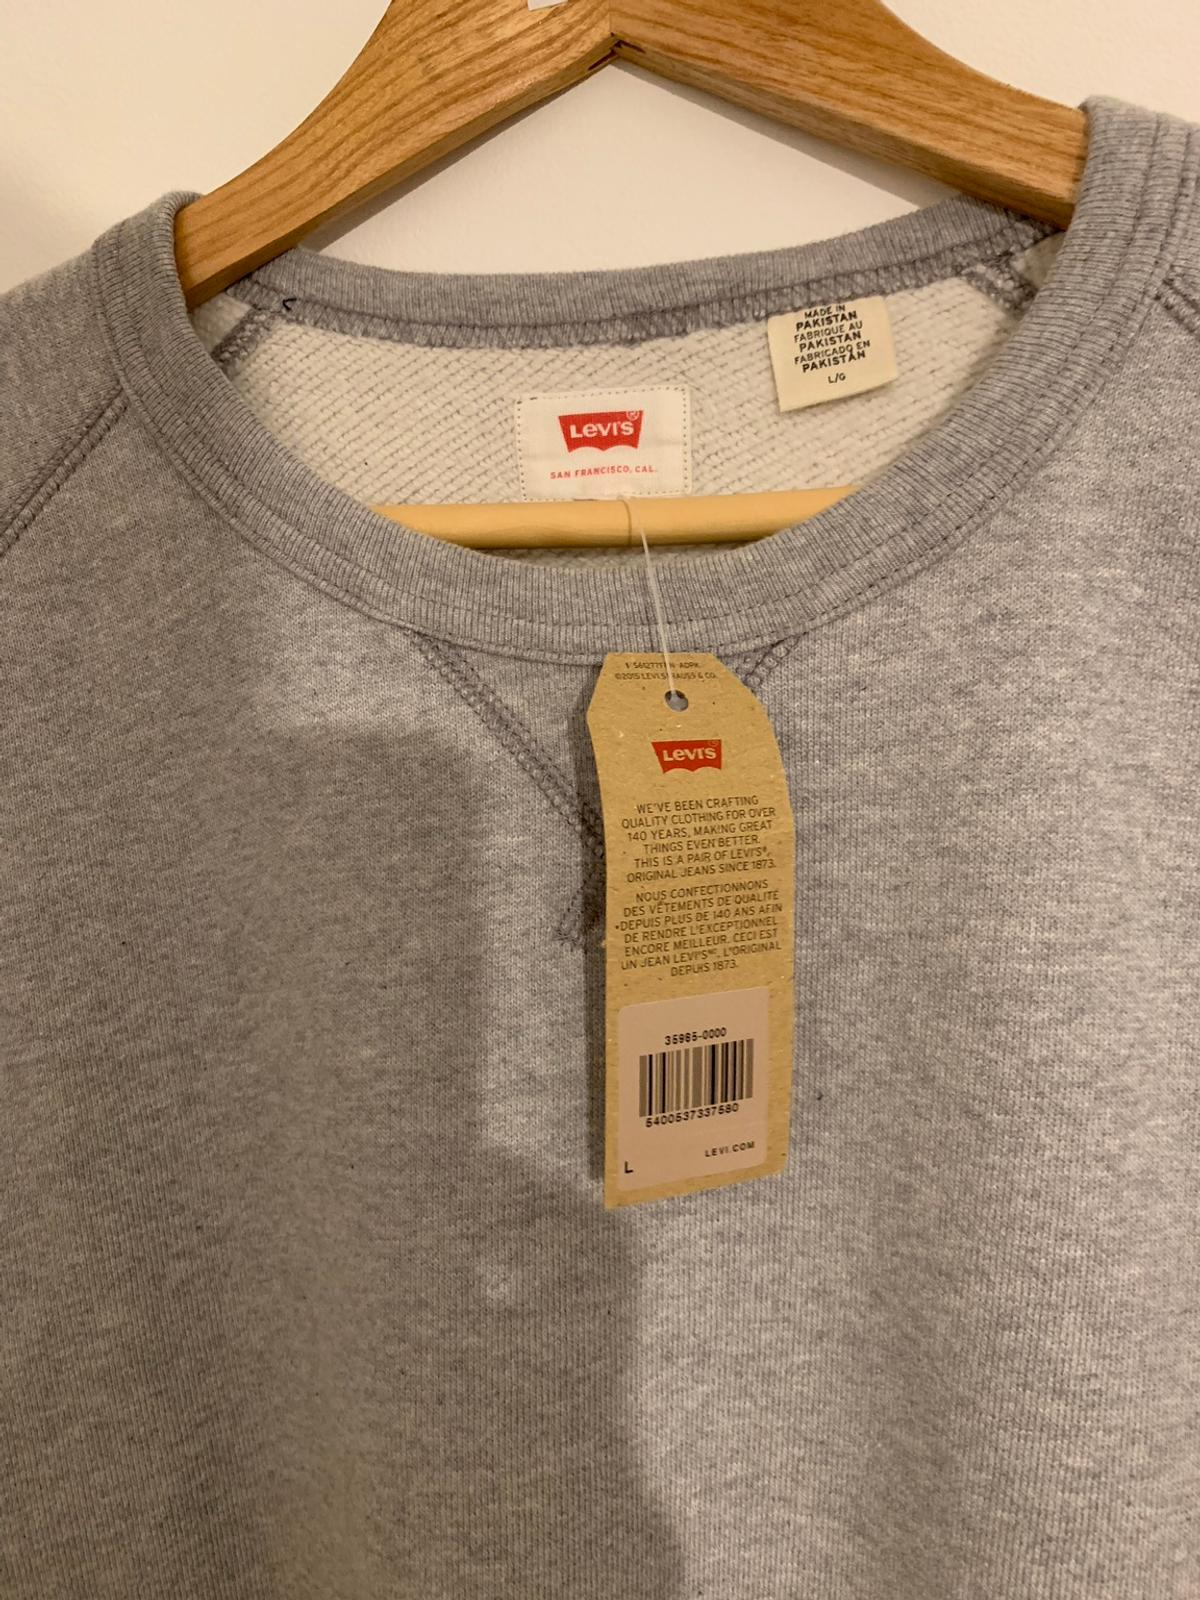 ad359da7203 Levis Sweatshirt/Jumper - Large - Brand New in GU46 Sandhurst for ...